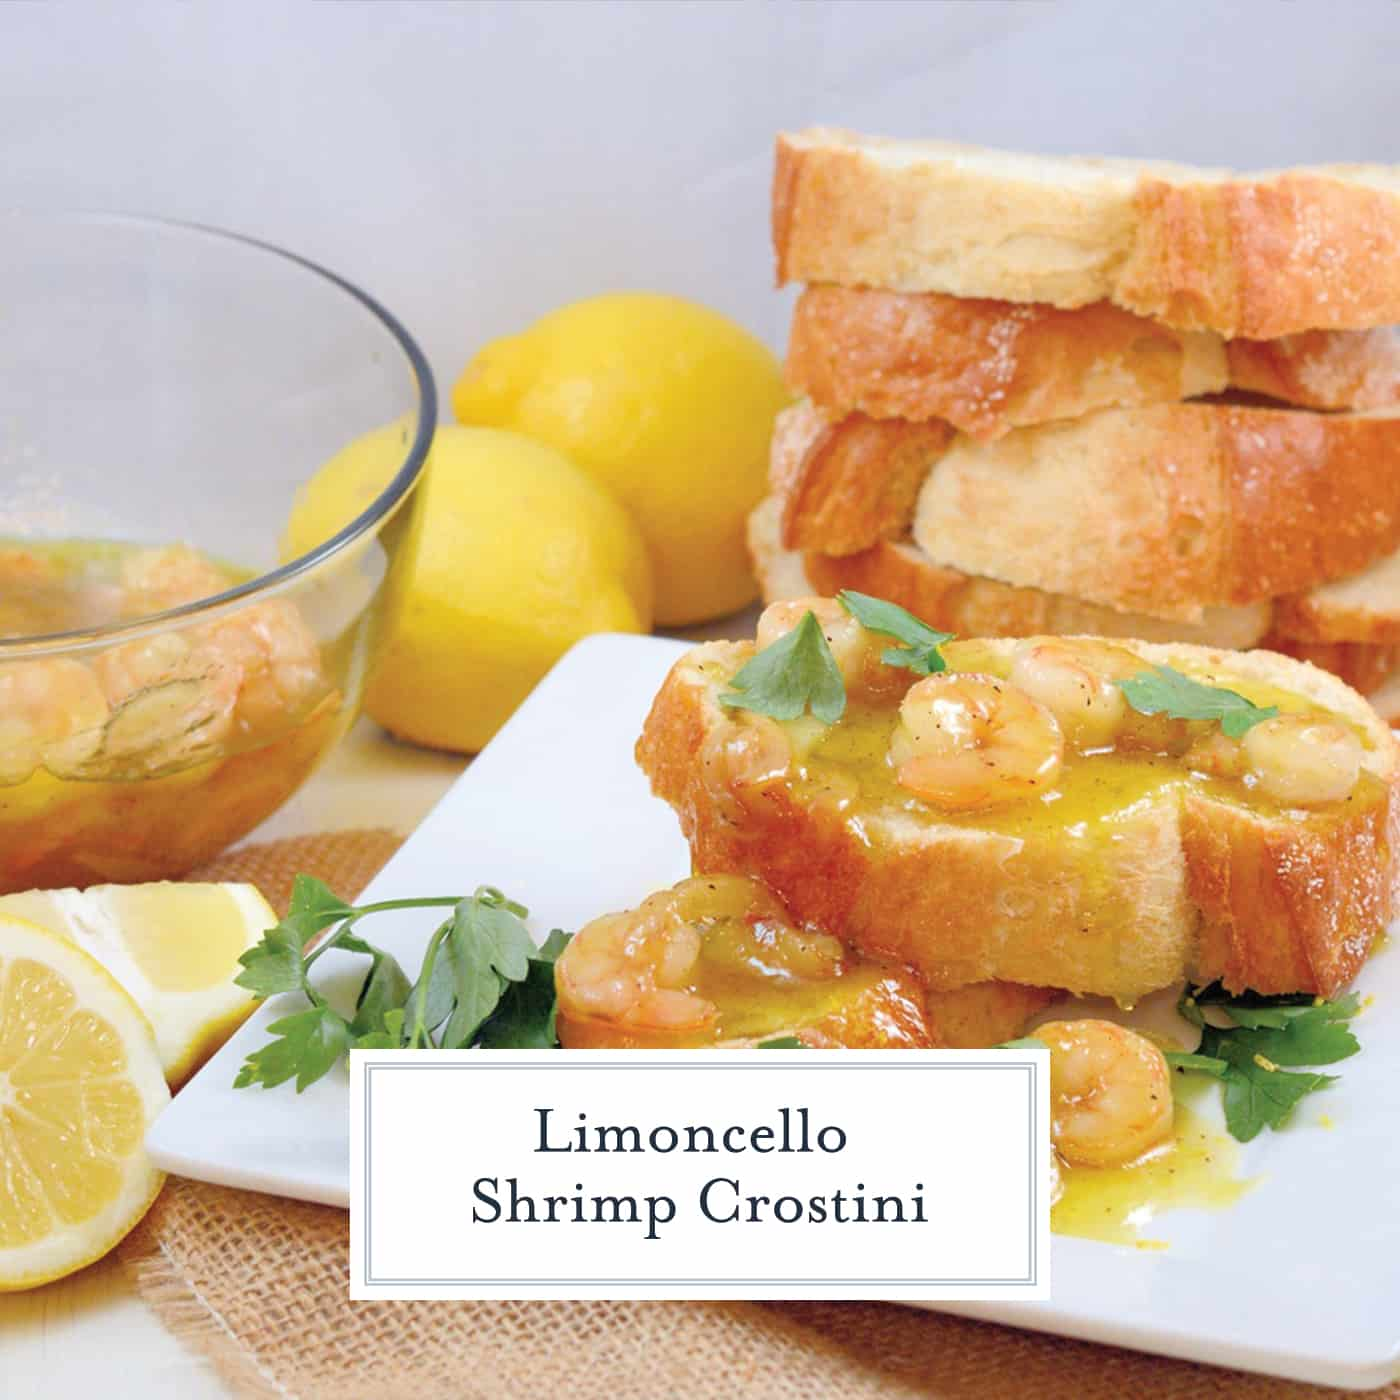 Limoncello Shrimp Crostini is made up of agrodolce sauce with shrimp, caramelized garlic and parsley spooned over crusty French bread! Ready in 20 minutes! #crostinirecipes #limoncello www.savoryexperiments.com